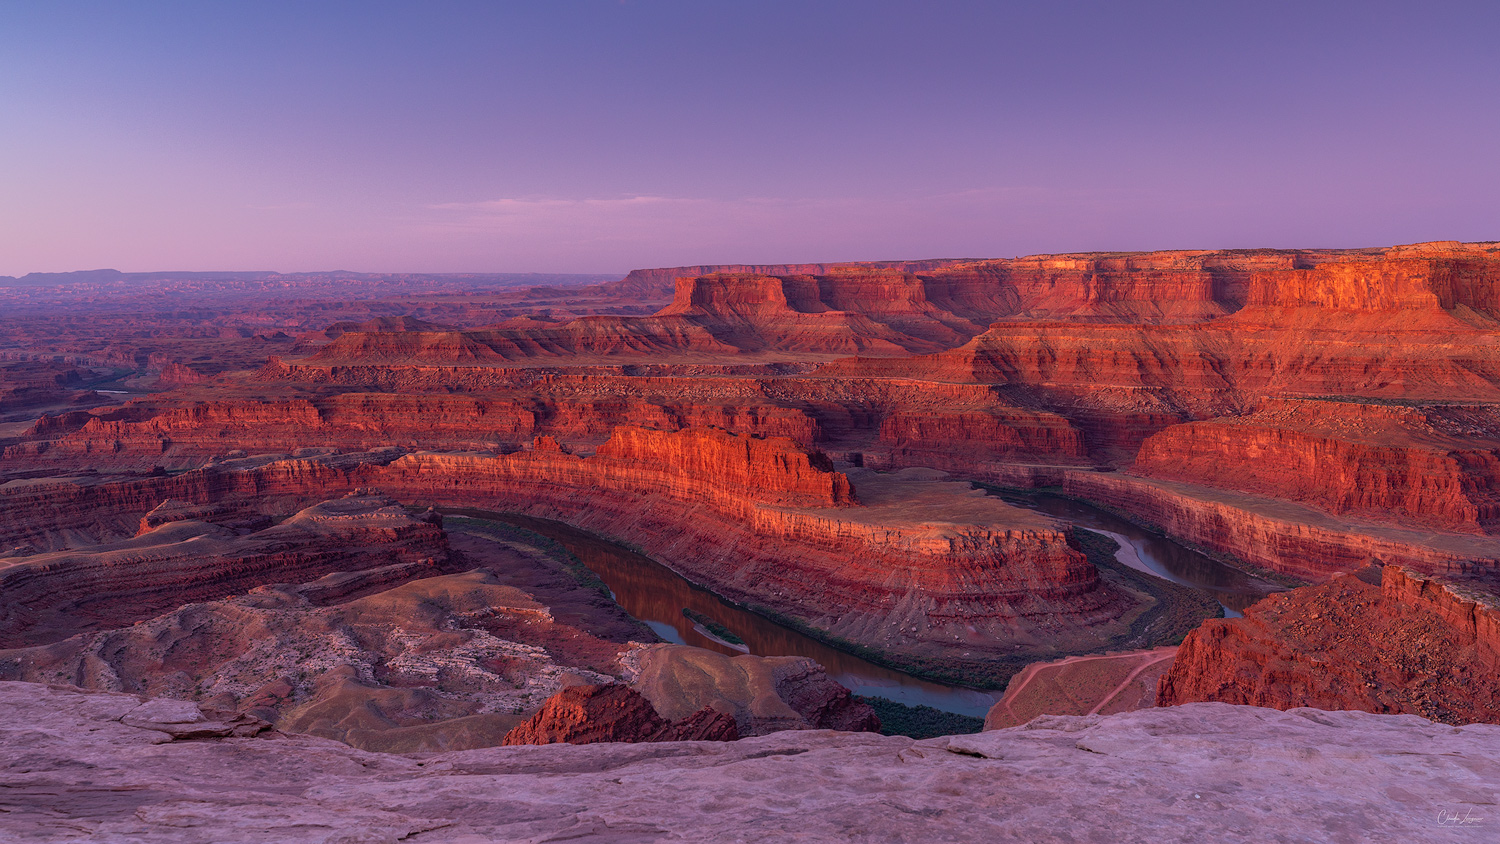 View of the Canyonlands and Colorado River at Dead Horse Point State Park in Utah.